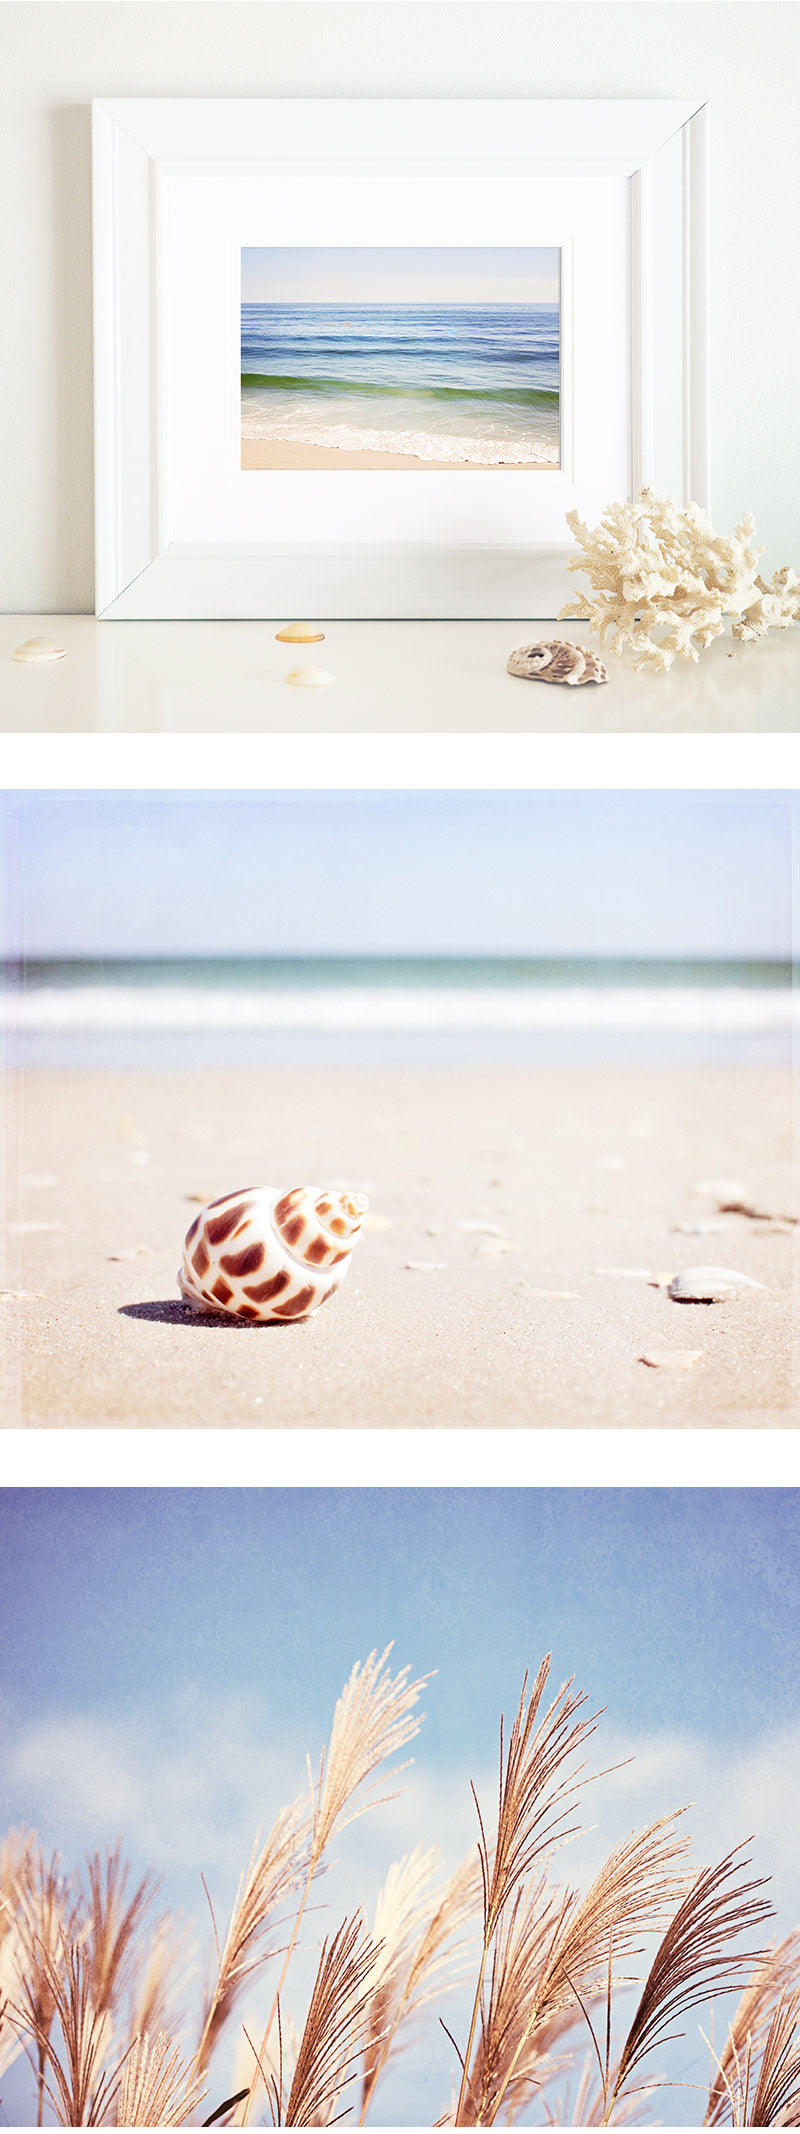 Beach Photography Art Prints by CarolynCochrane.com | Coastal Wall Decor